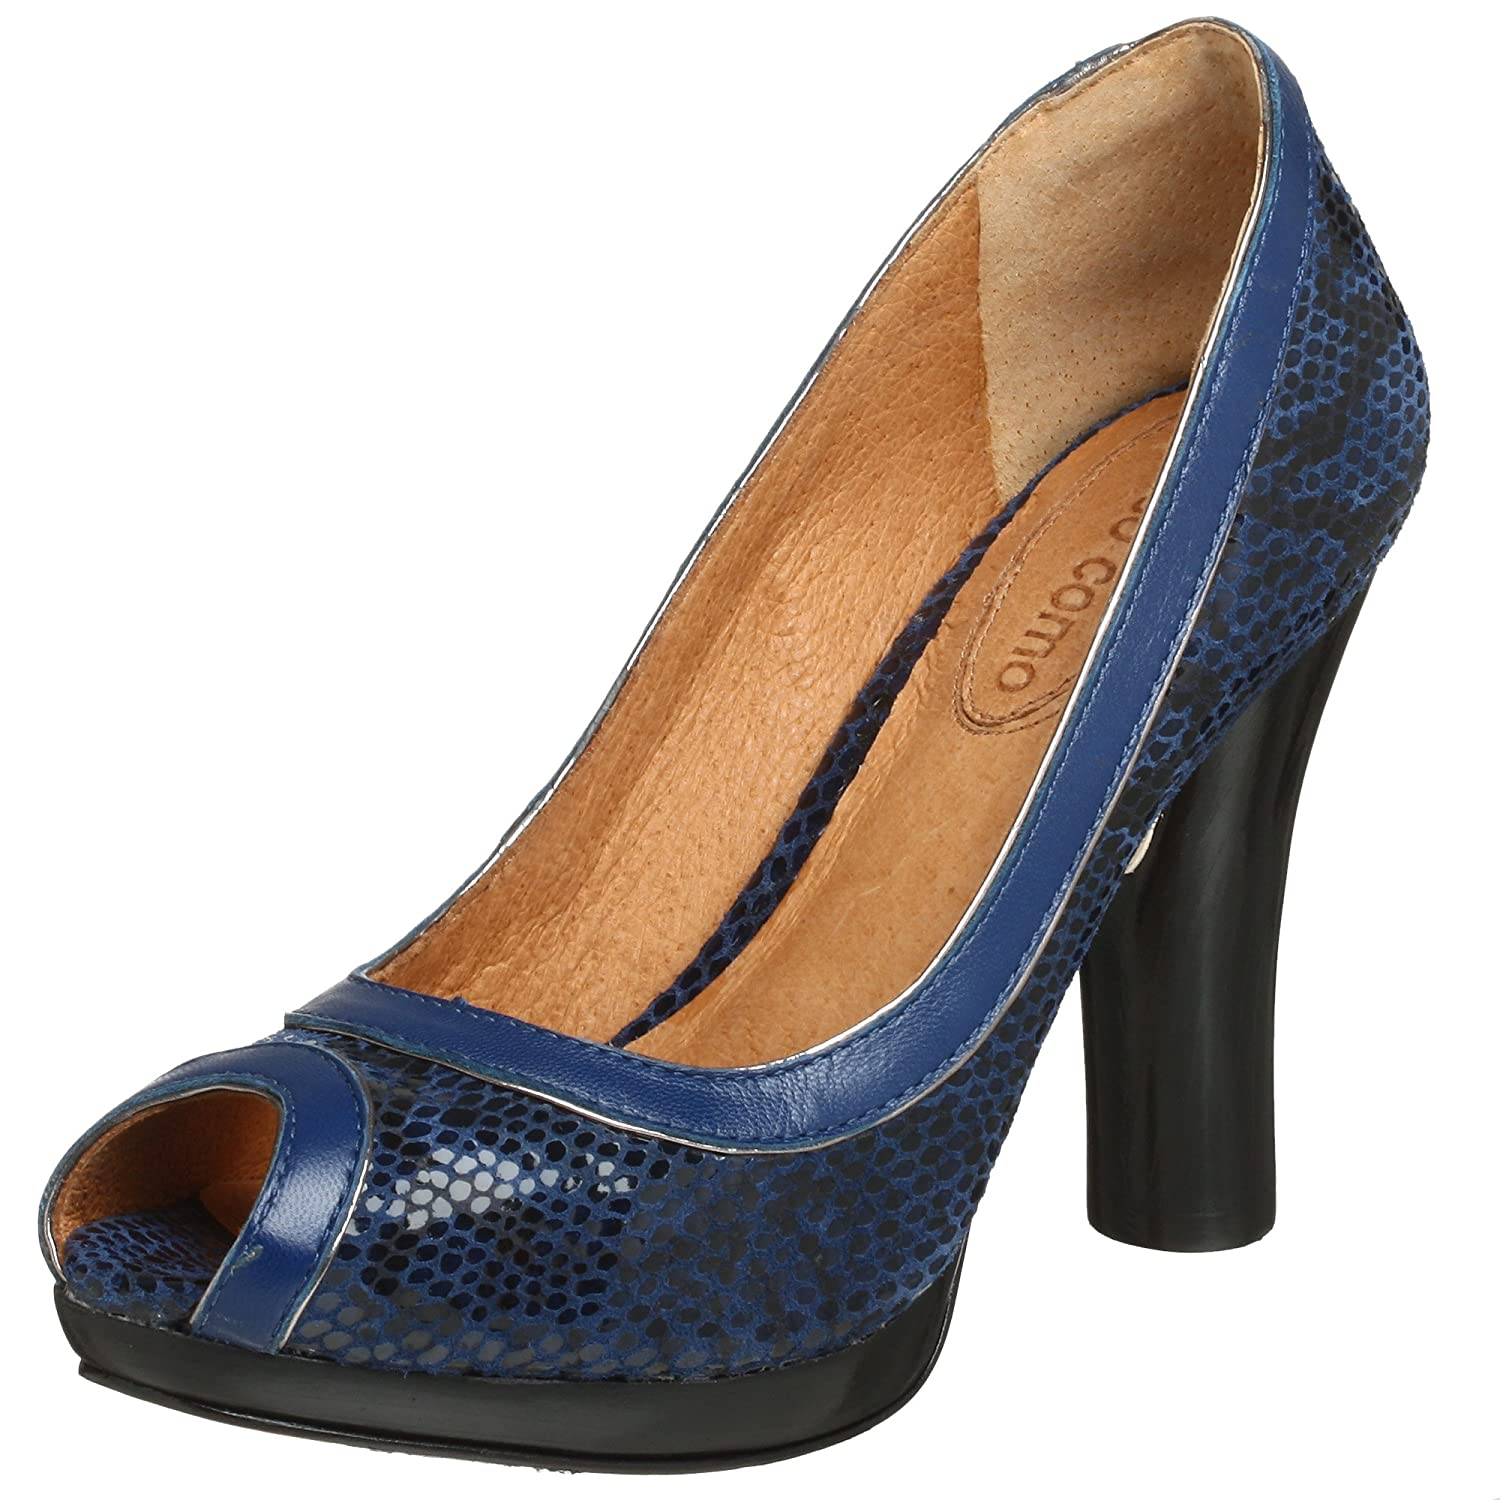 Corso Como Eden Pump - Free Overnight Shipping & Return Shipping: Endless.com :  blue platform pump peep toe